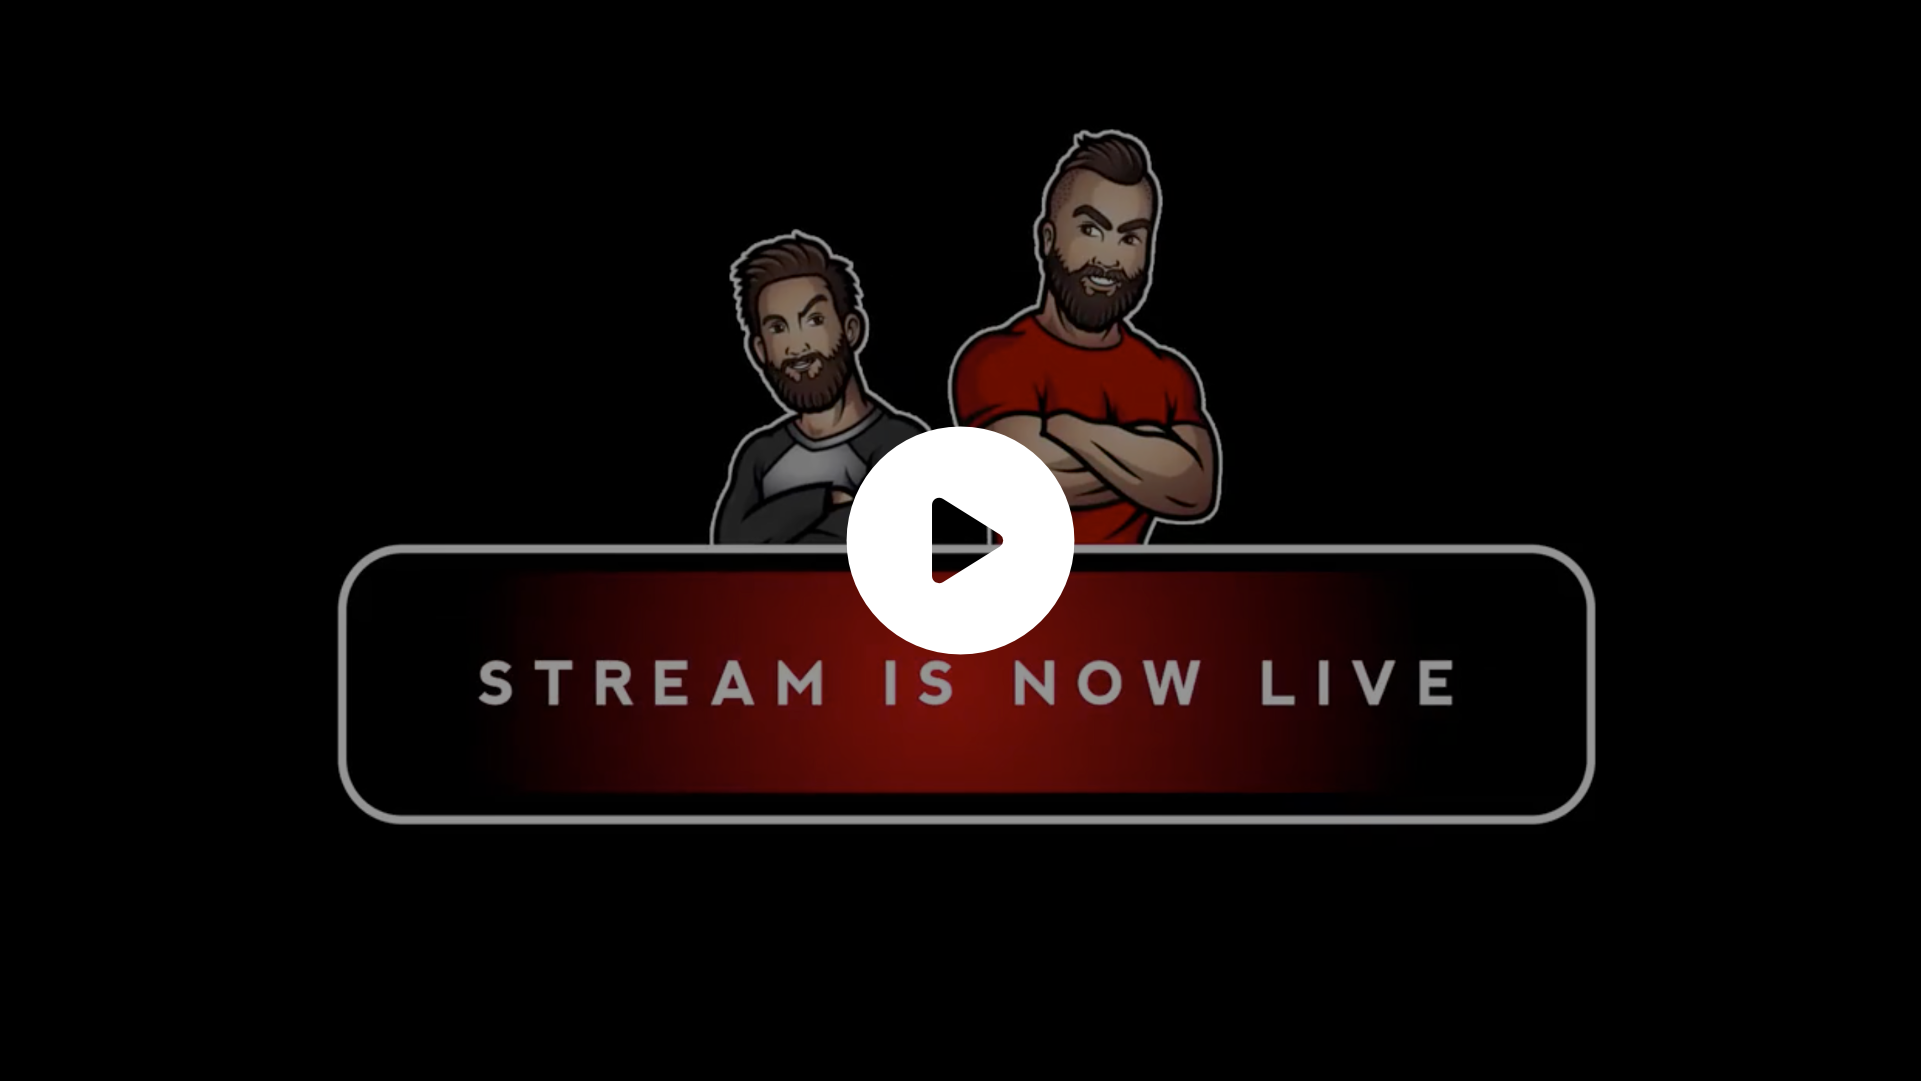 Simple animation supposed to be used as a social media post when the clients stream goes live